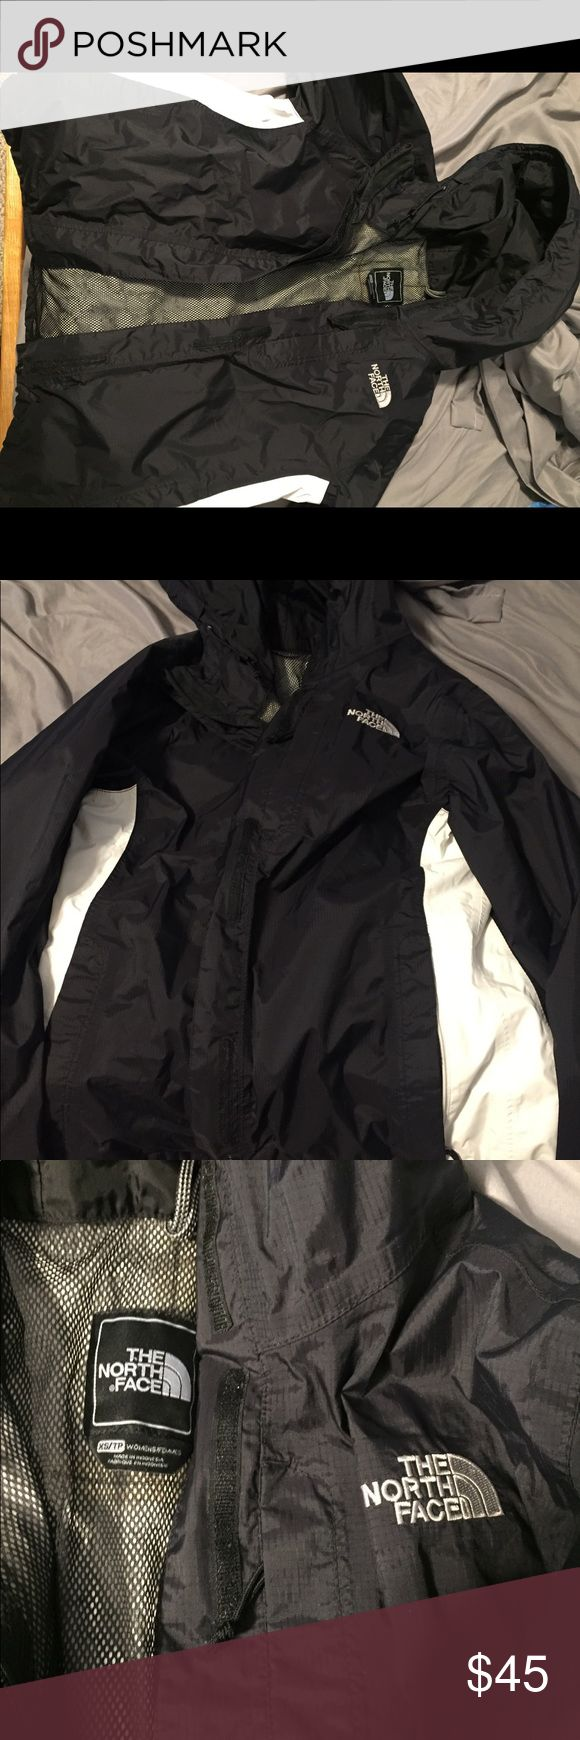 Black/white North Face rain jacket. Black/white rain jacket. Size XS. Hardly worn. North Face Jackets & Coats